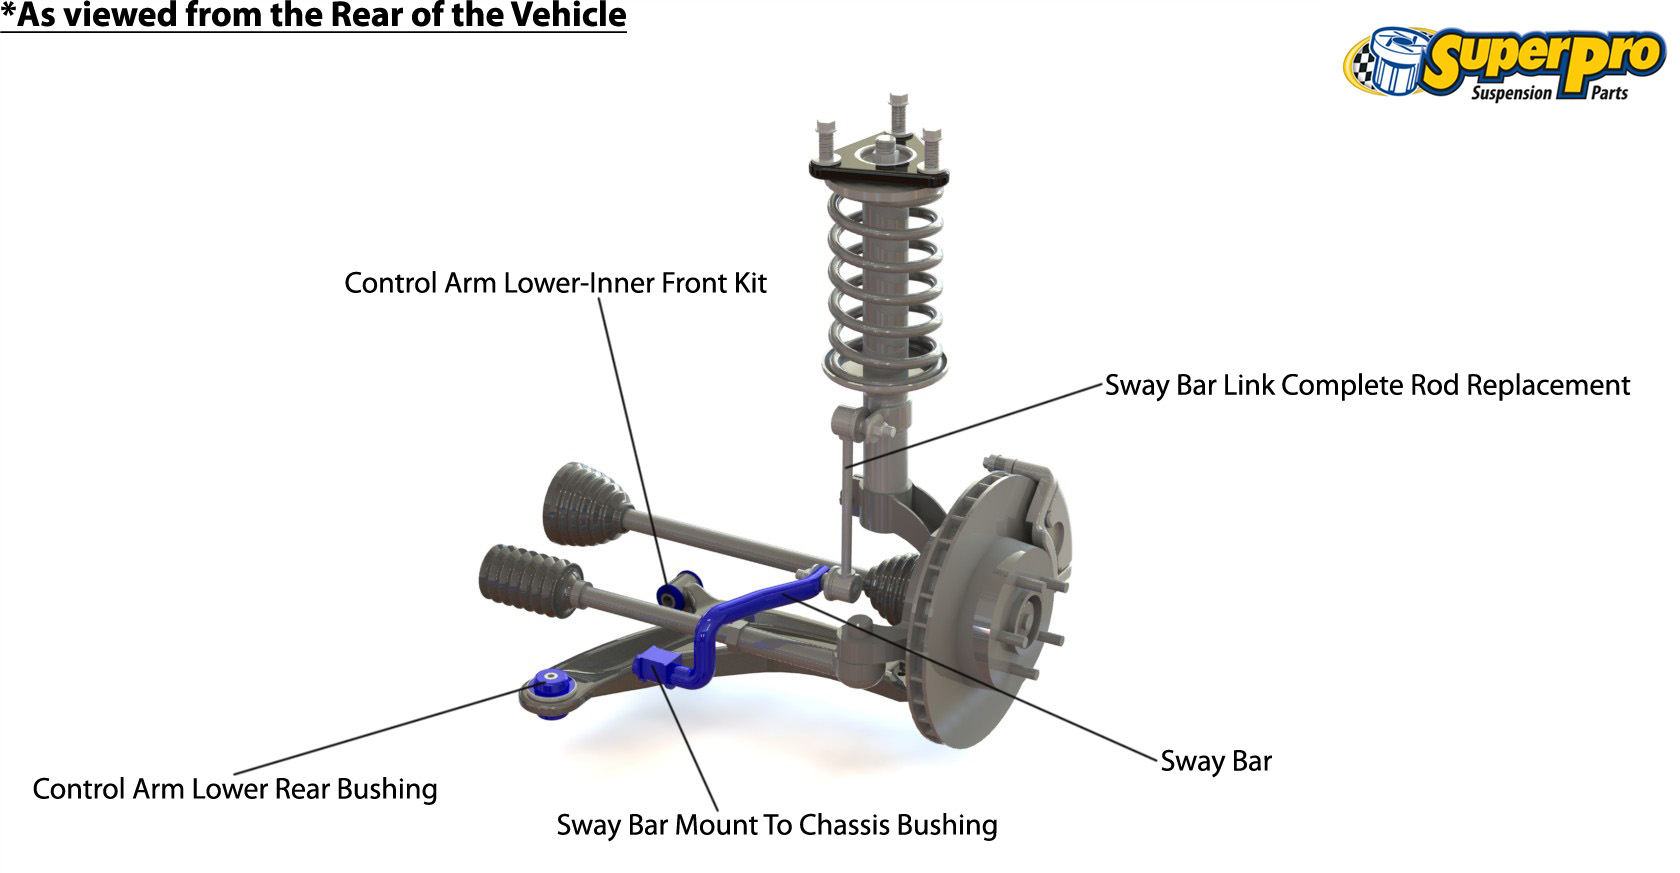 Front suspension diagram for TOYOTA RAV 4 2000-2005 - XA20